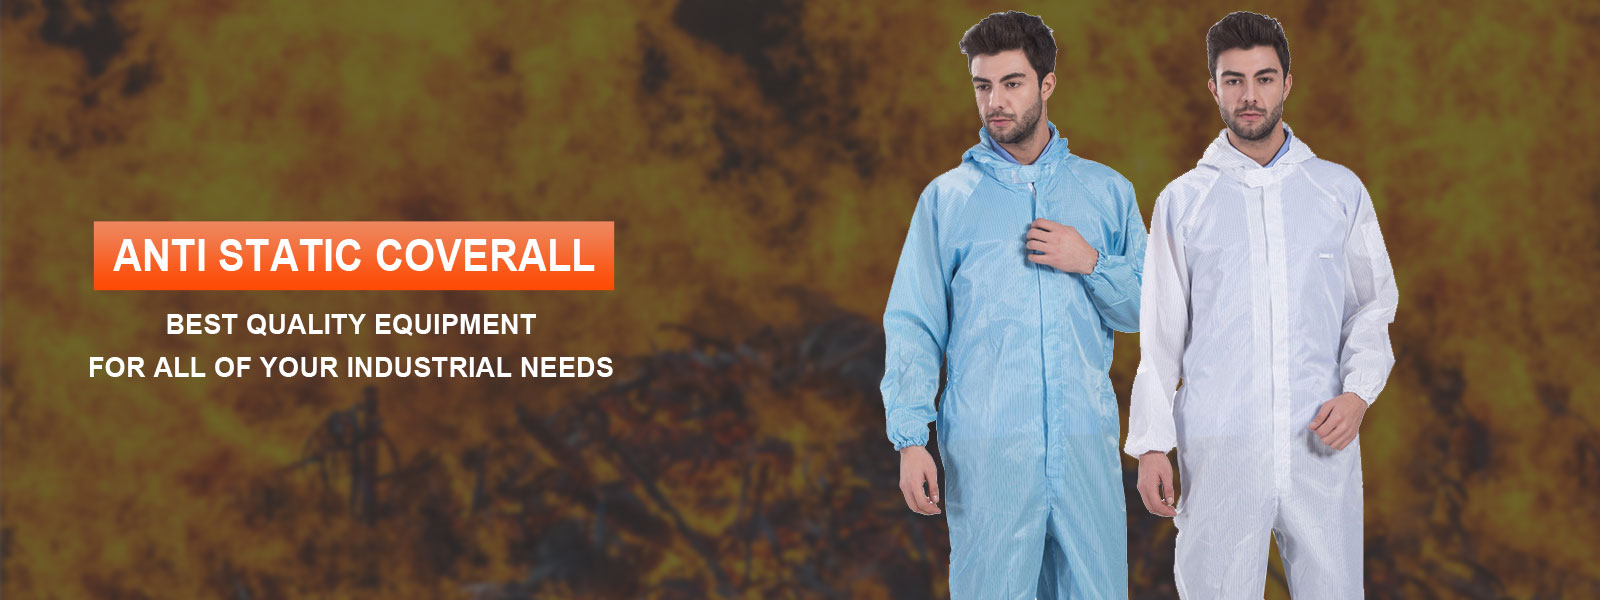 Anti Static Coverall Manufacturers in Malawi